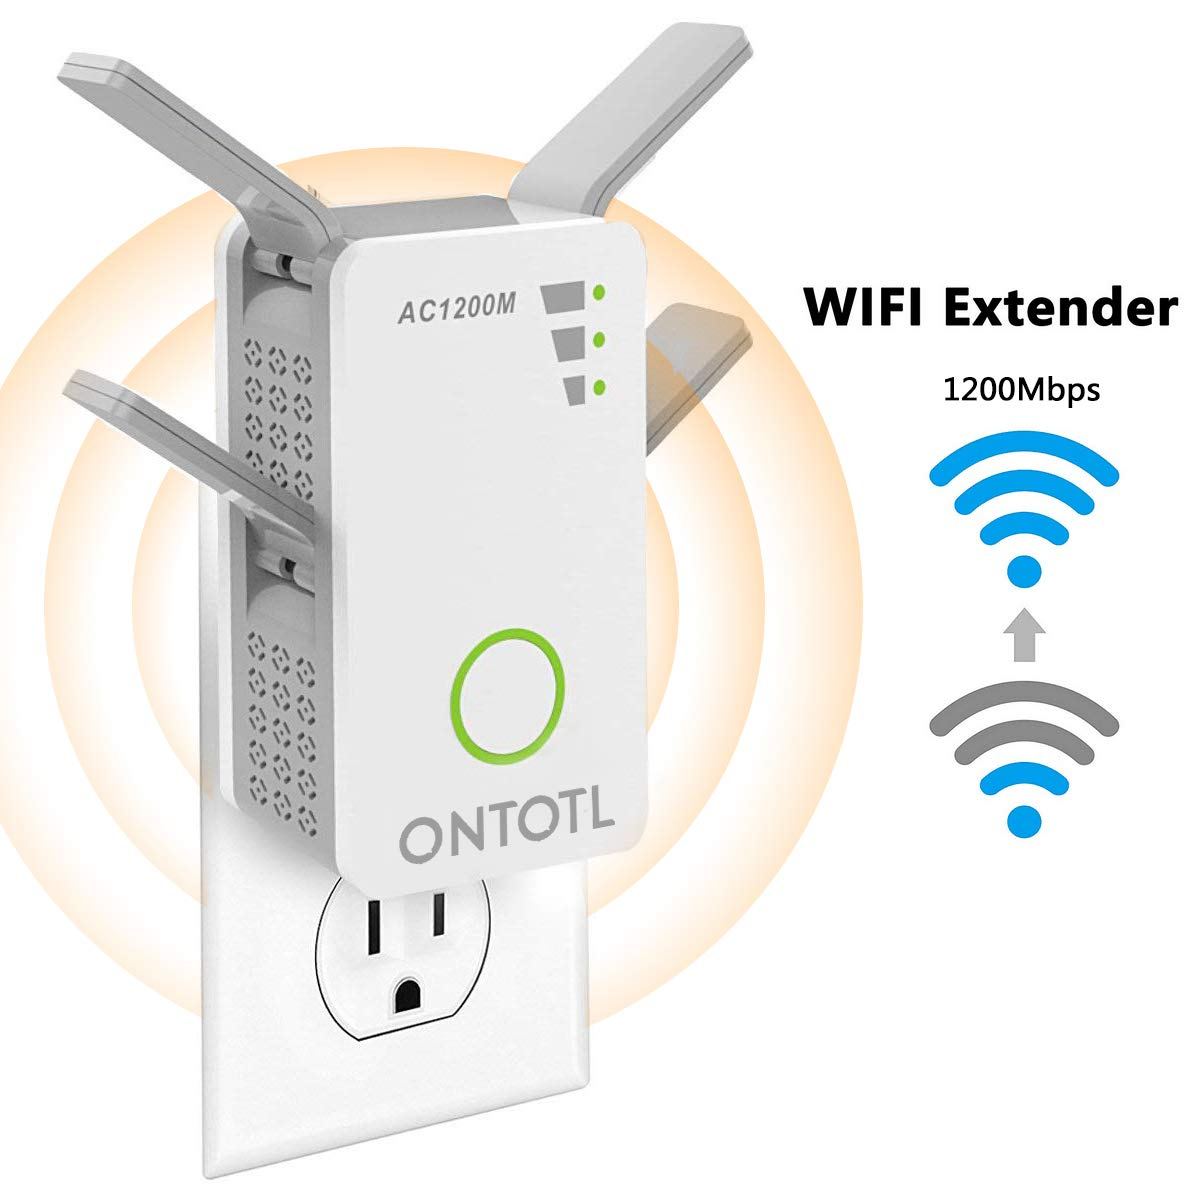 WiFi Range Extender Wireless Repeater,ONTOTL 1200Mbps WiFi Extender Internet Signal Booster with 4 External Antennas,Full Coverage WiFi Signal Amplifier Dual External Band Available 2.4GHz and 5GHz